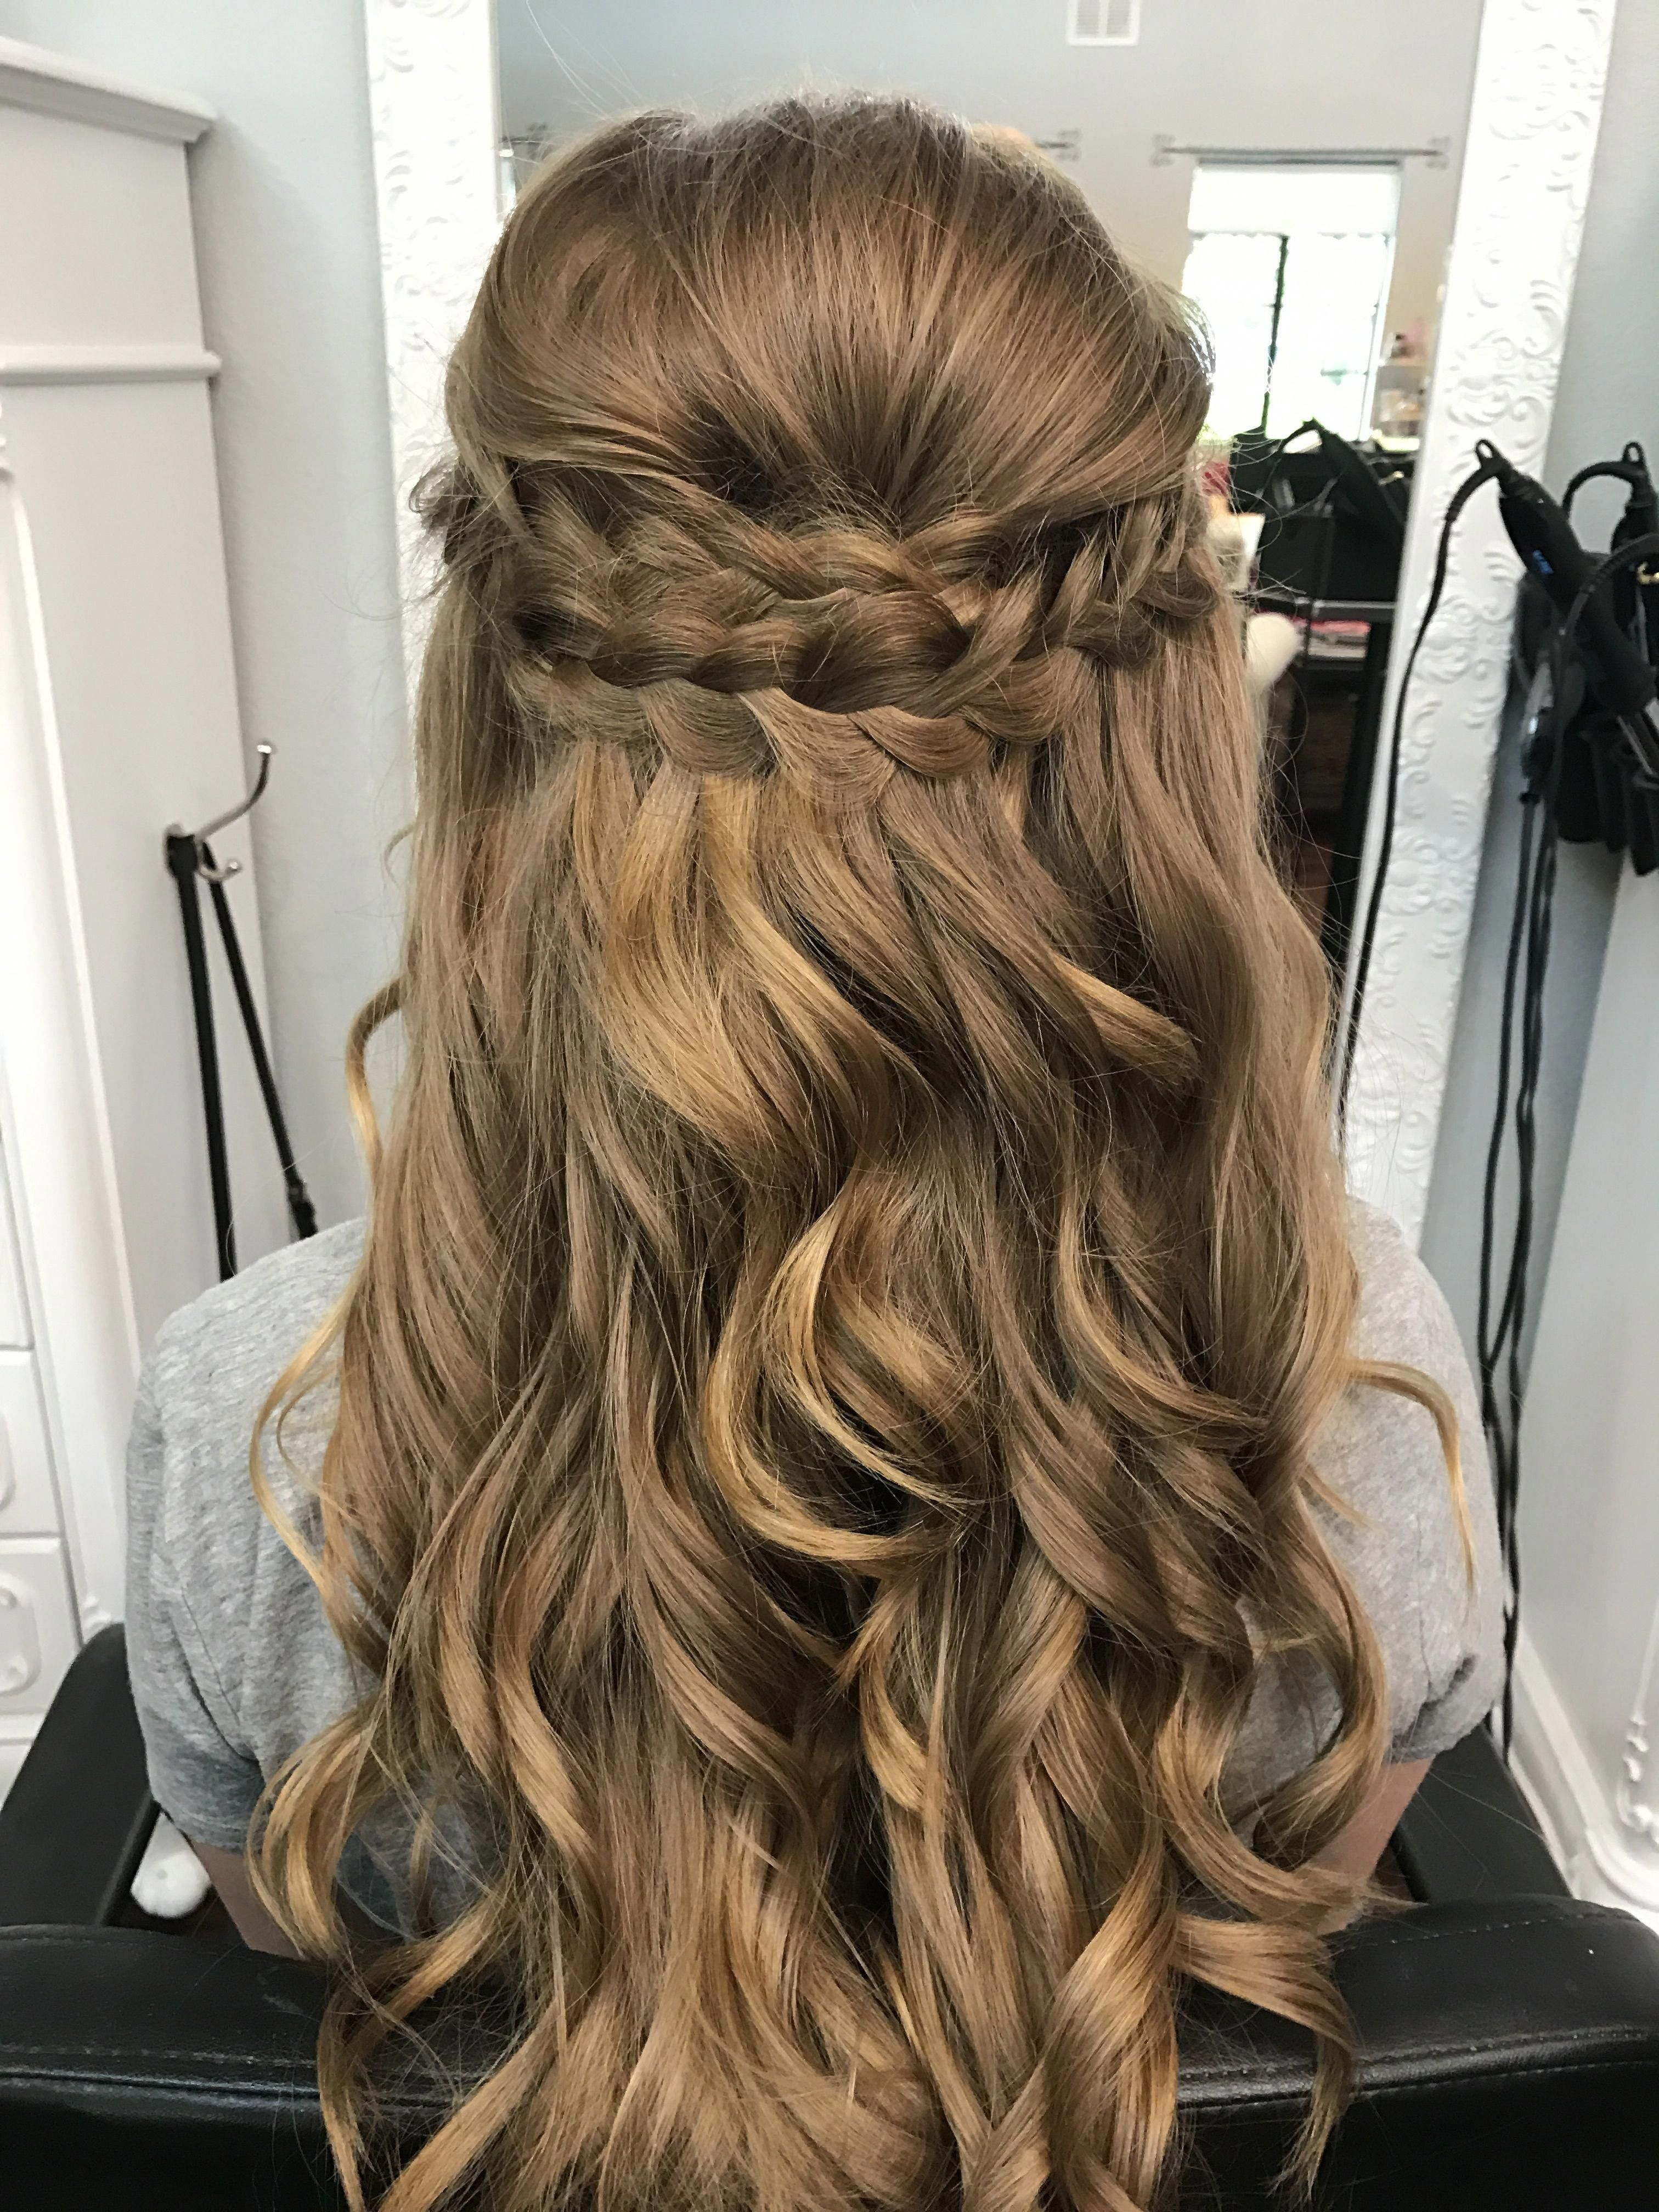 braided half up half down prom hair #promhairstyleupdos